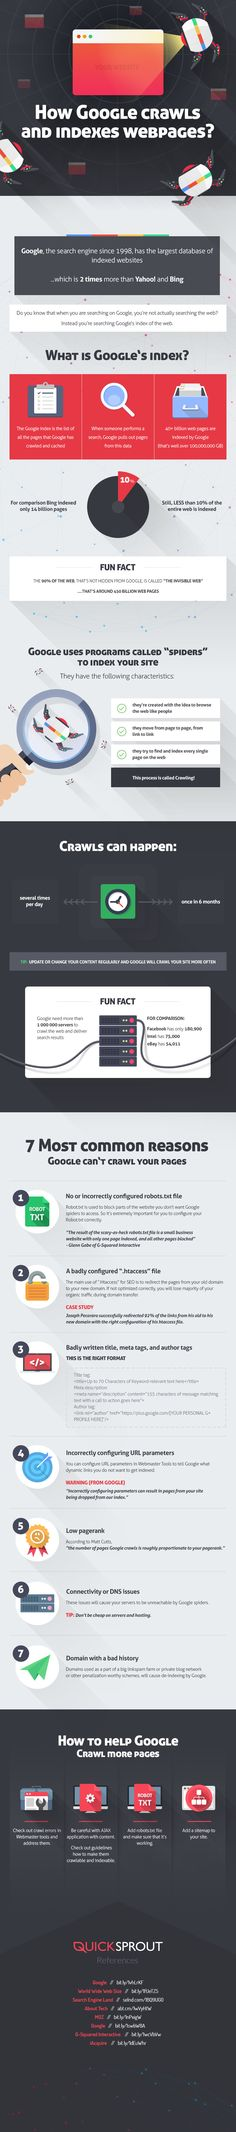 How Google Crawls and Indexes Web Pages #Google #SEO #Infographic